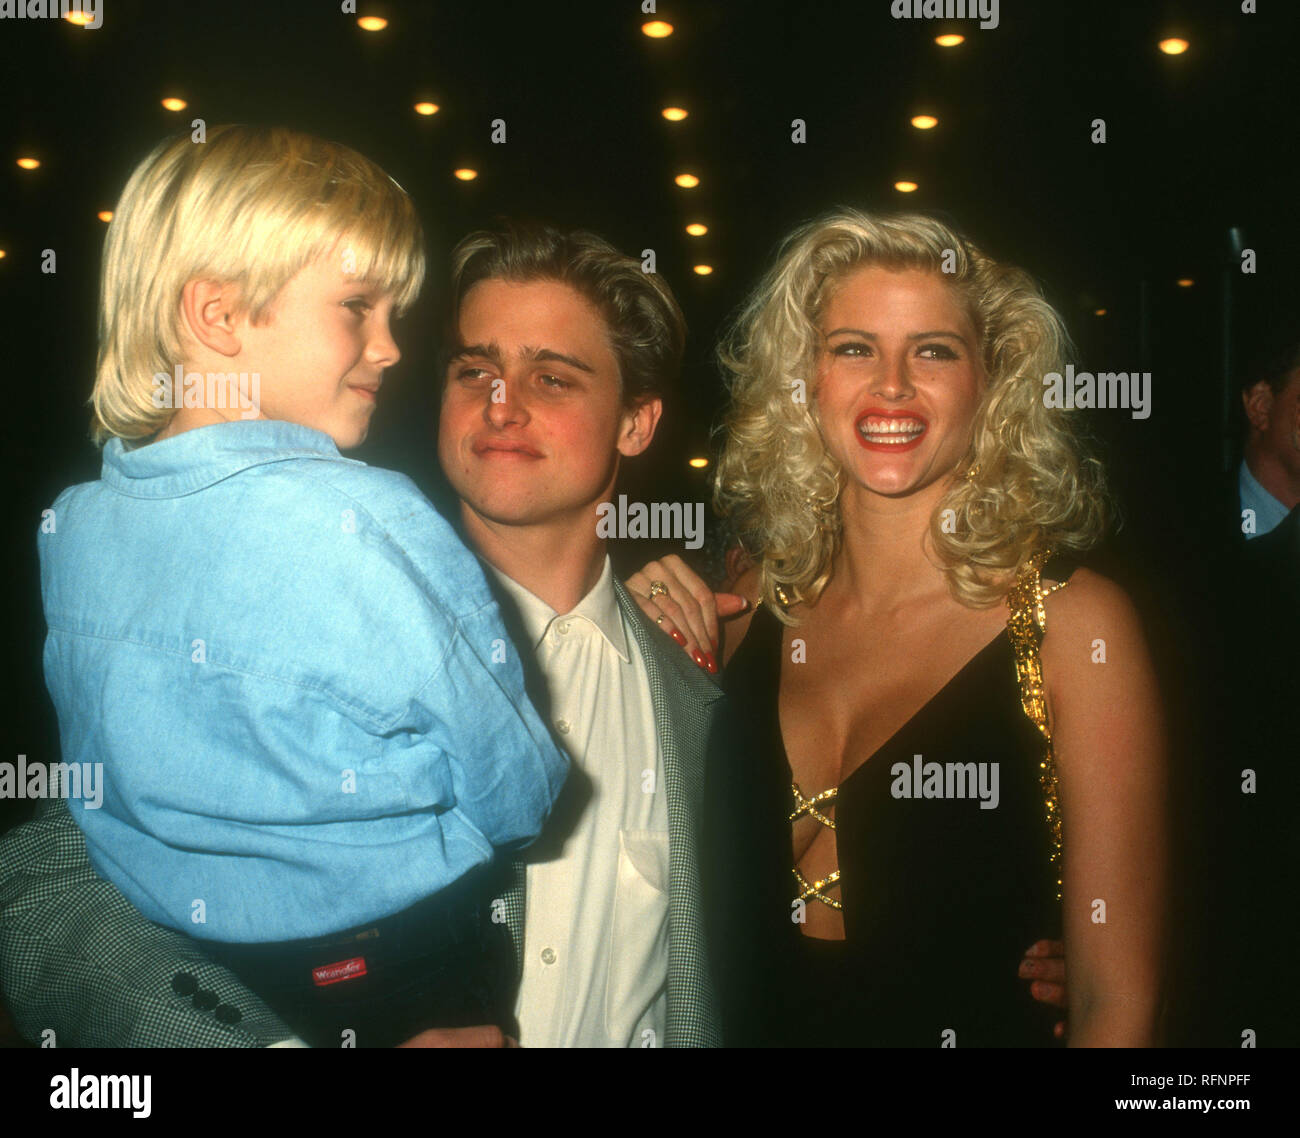 HOLLYWOOD, CA - NOVEMBER 11: Model/actress Anna Nicole Smith, brother Daniel Ross and son Daniel Smith attend Opening Night Party for 'Guys & Dolls' on November 11, 1993 at Club Tatou in Hollywood, California. Photo by Barry King/Alamy Stock Photo - Stock Image